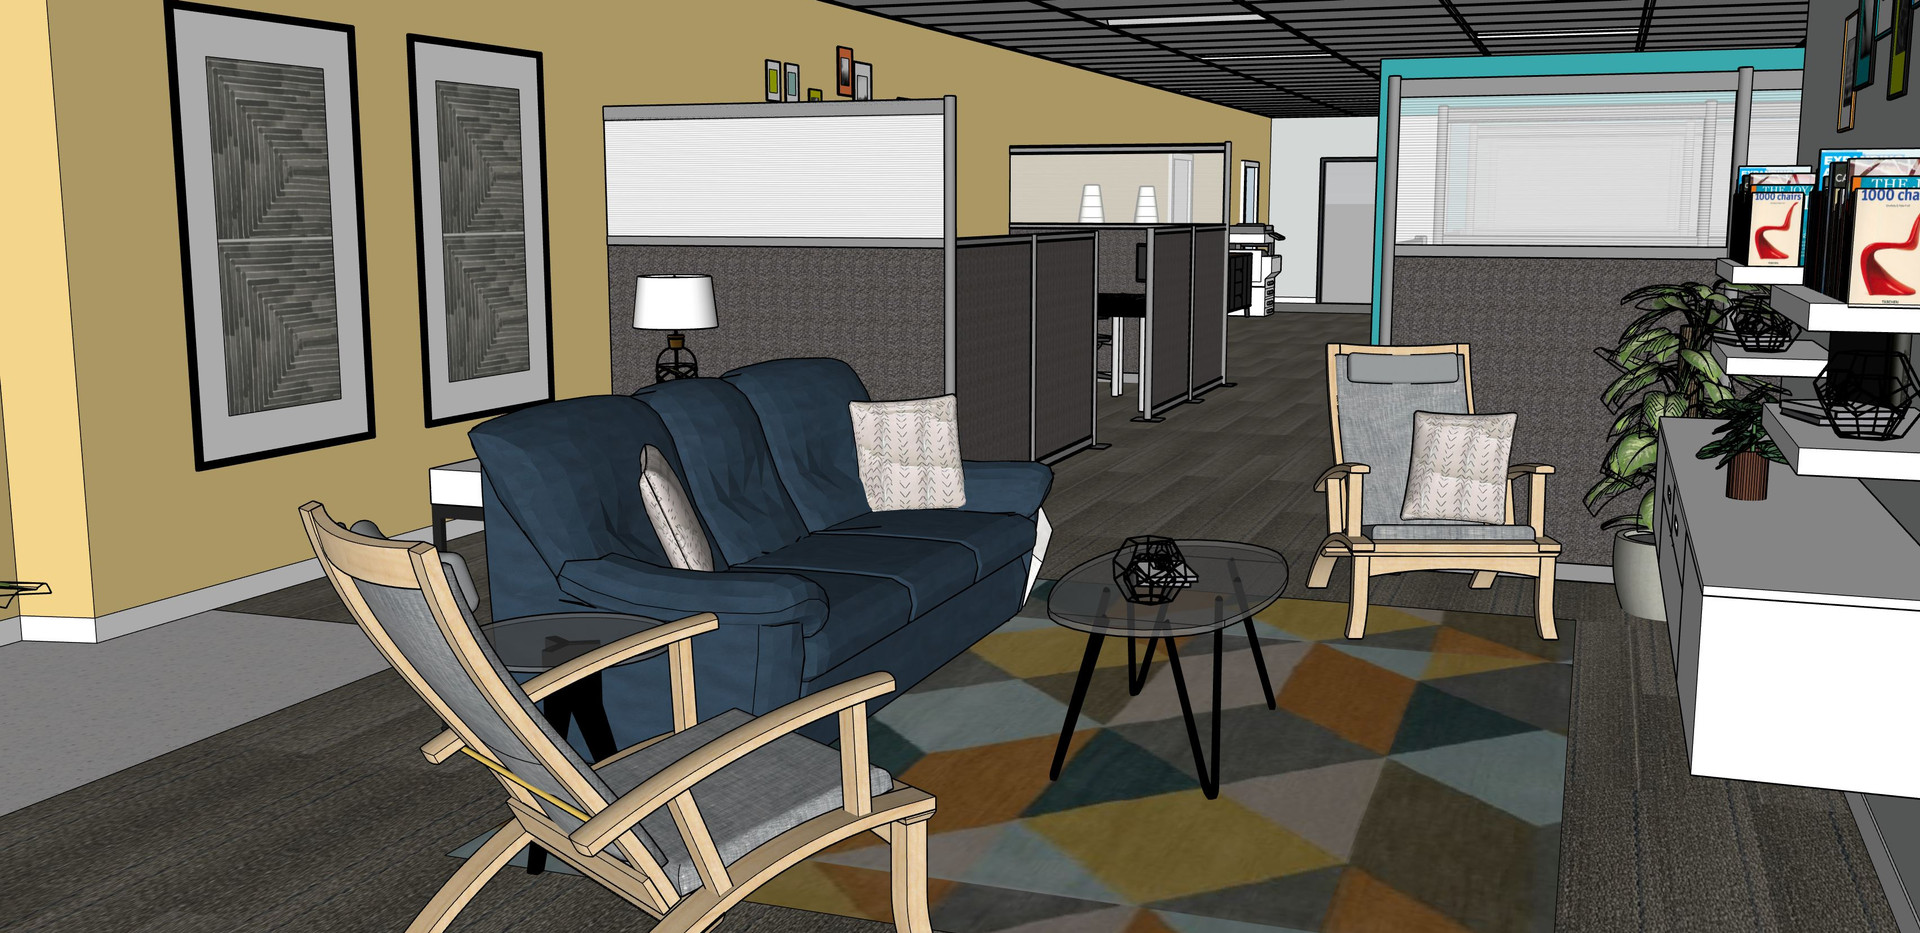 Blue Couch Perspective 2.JPG